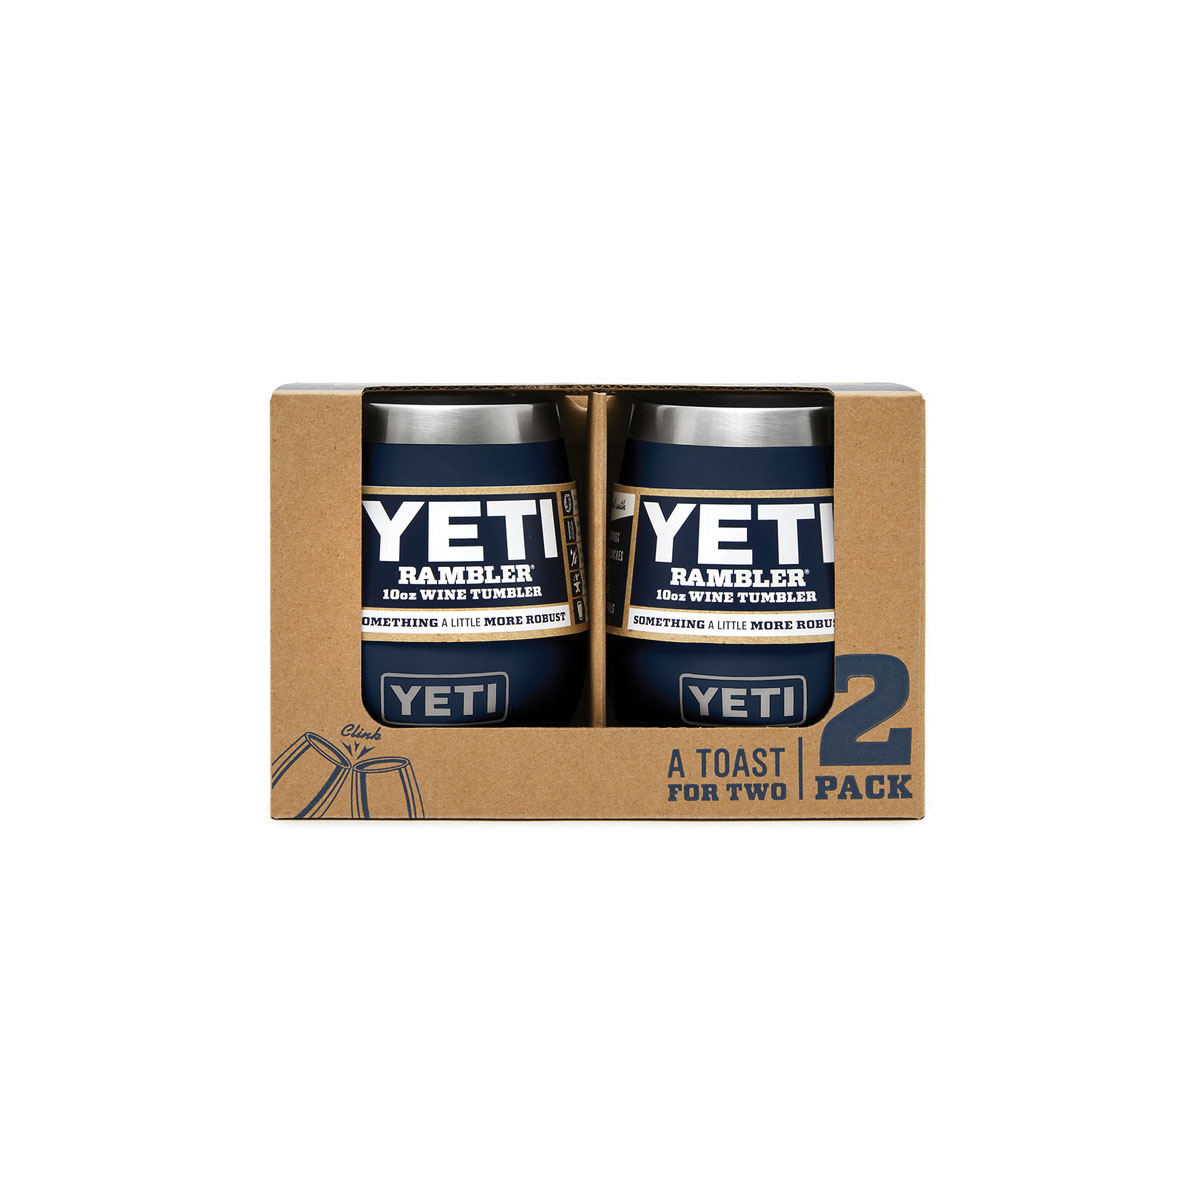 Picture of YETI 21071500031 Wine Tumbler, 10 oz Capacity, Stainless Steel, Reef Blue, Dishwasher Safe: Yes, 2, Pack